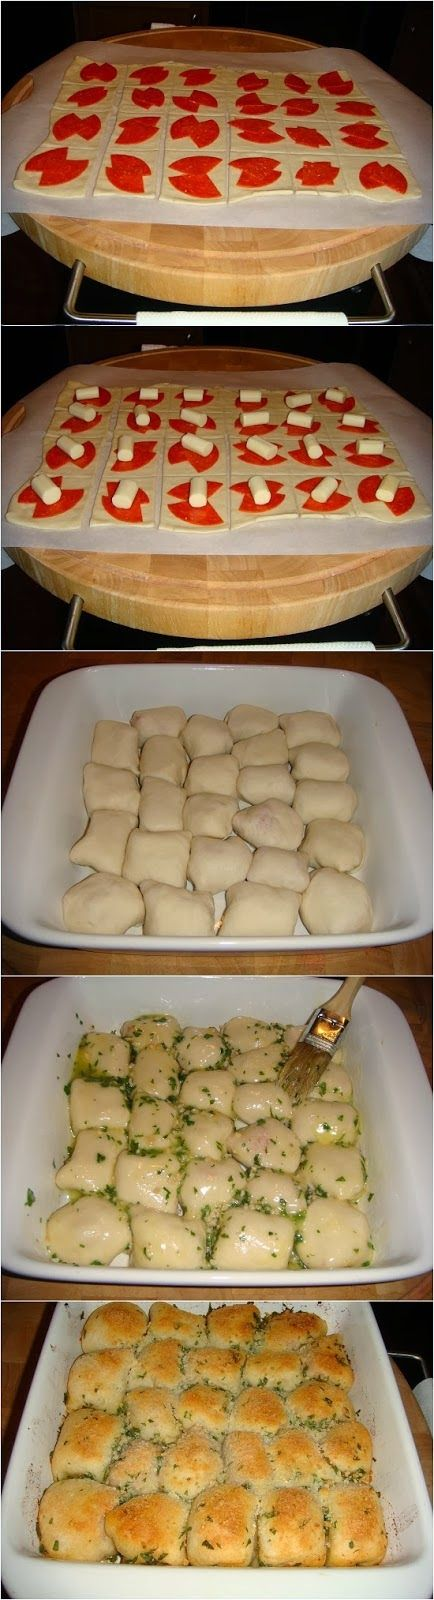 Stuffed Pizza Rolls. Baking time was off, it took about 25 mins or so (I can't really remember) but way longer that the 10 mins it says.